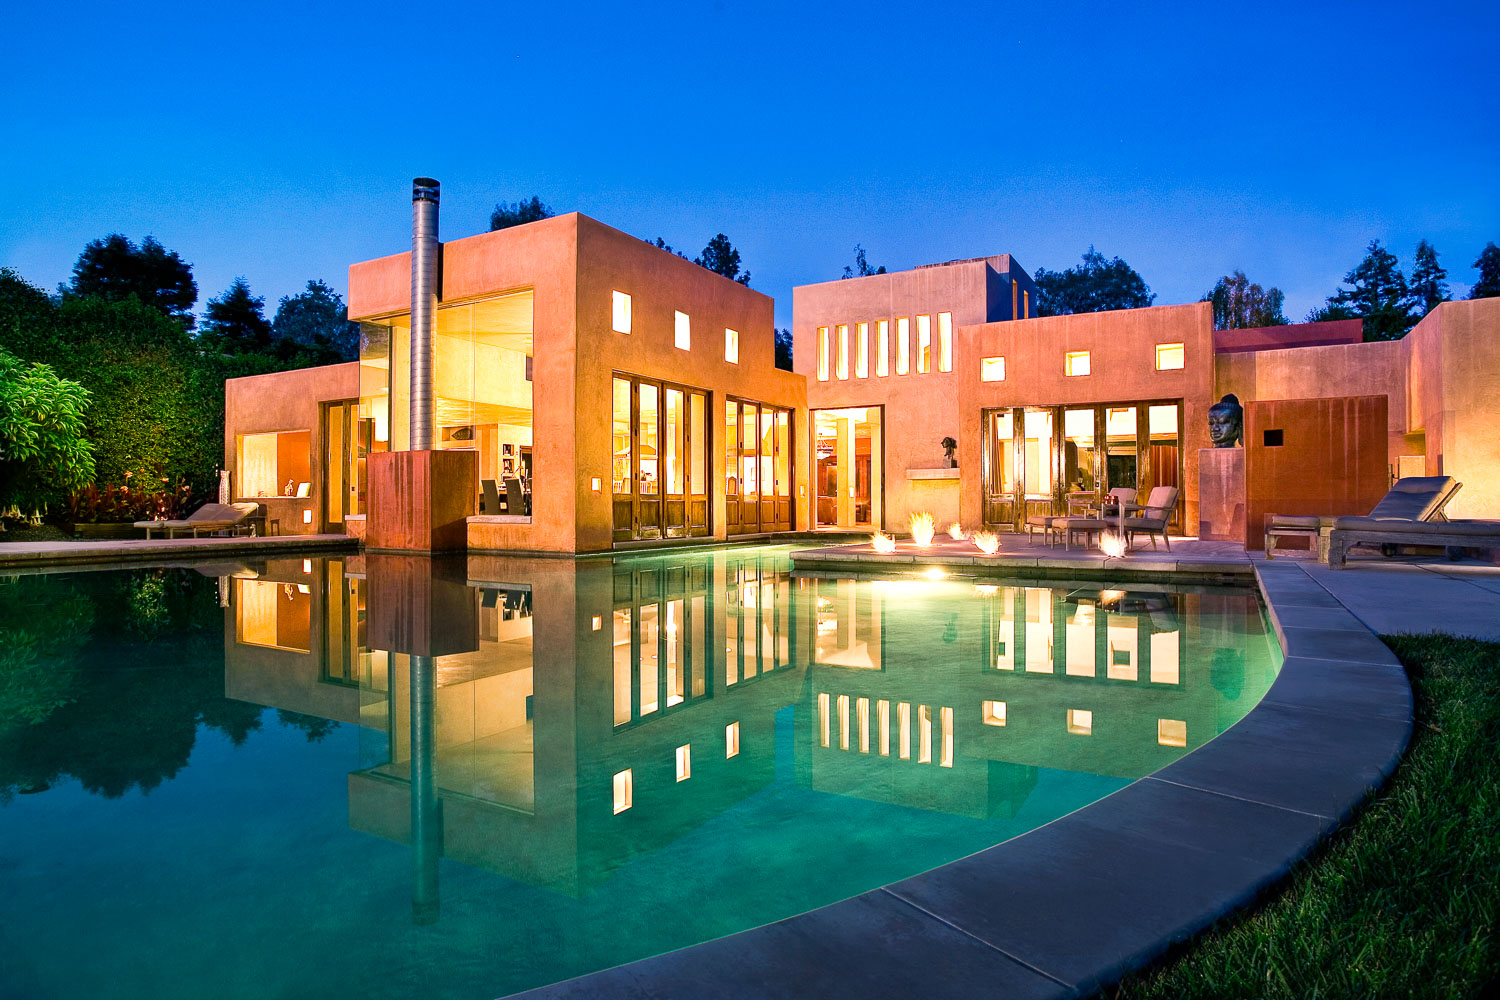 001 Los Angeles Private Residence.jpg